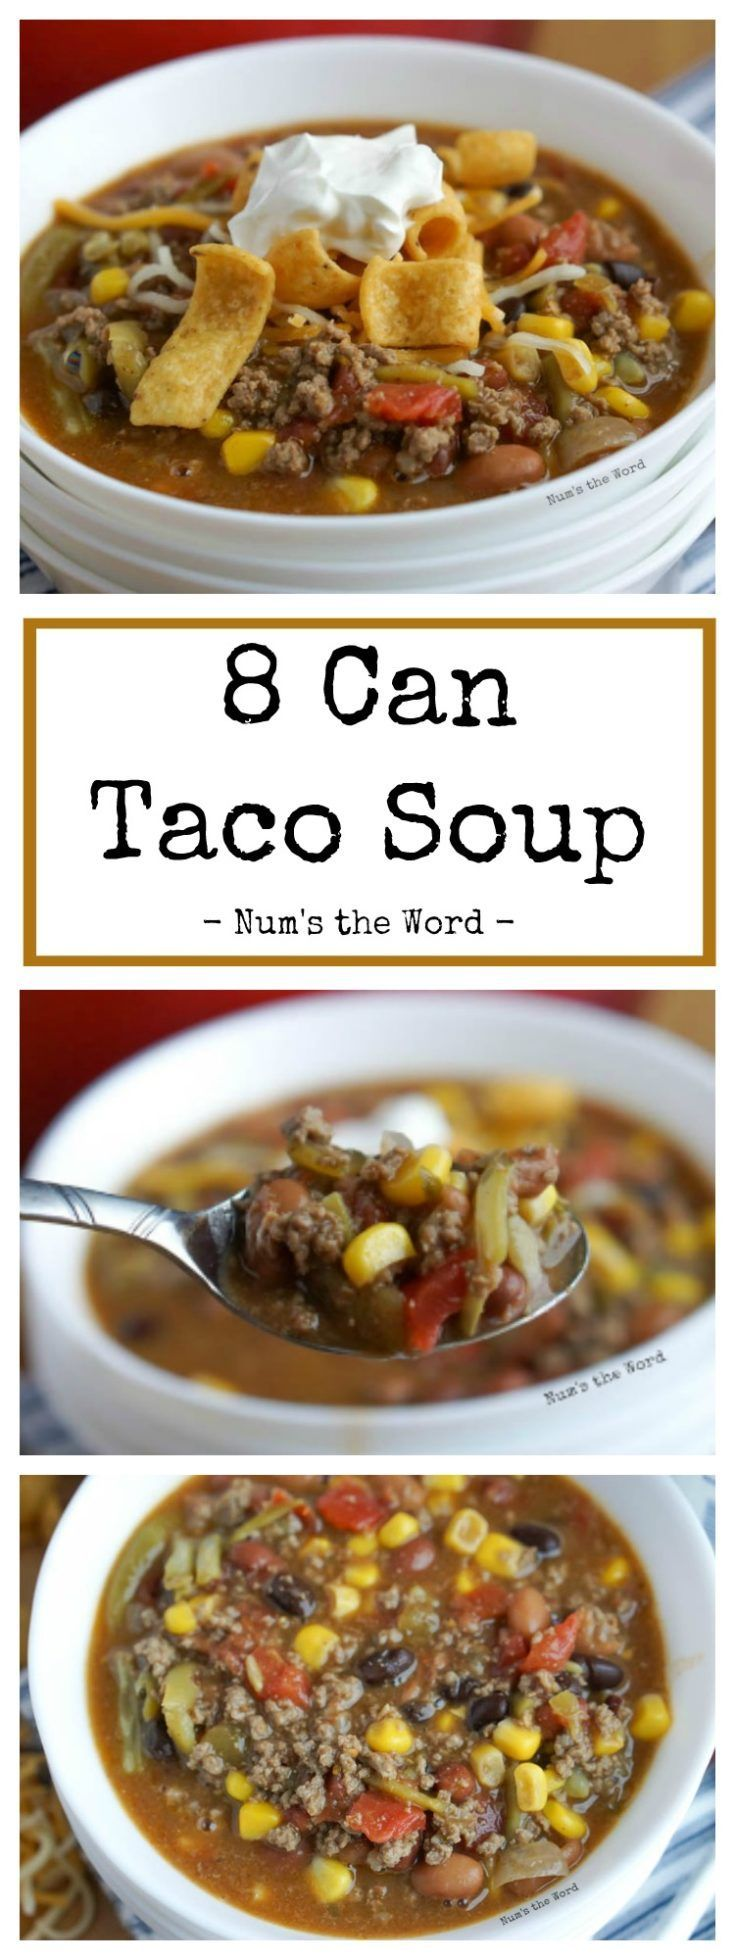 8 Can Taco Soup ITEMS: Pinto Beans Corn Black Beans French Style Green Beans Chili Beans Stewed Tomatoes Ro*Tel Diced Tomatoes with Chiles Green Chiles Ground beef, seasoning and 8 cans found in your pantry make up this simple and delicious soup! #tacosoup